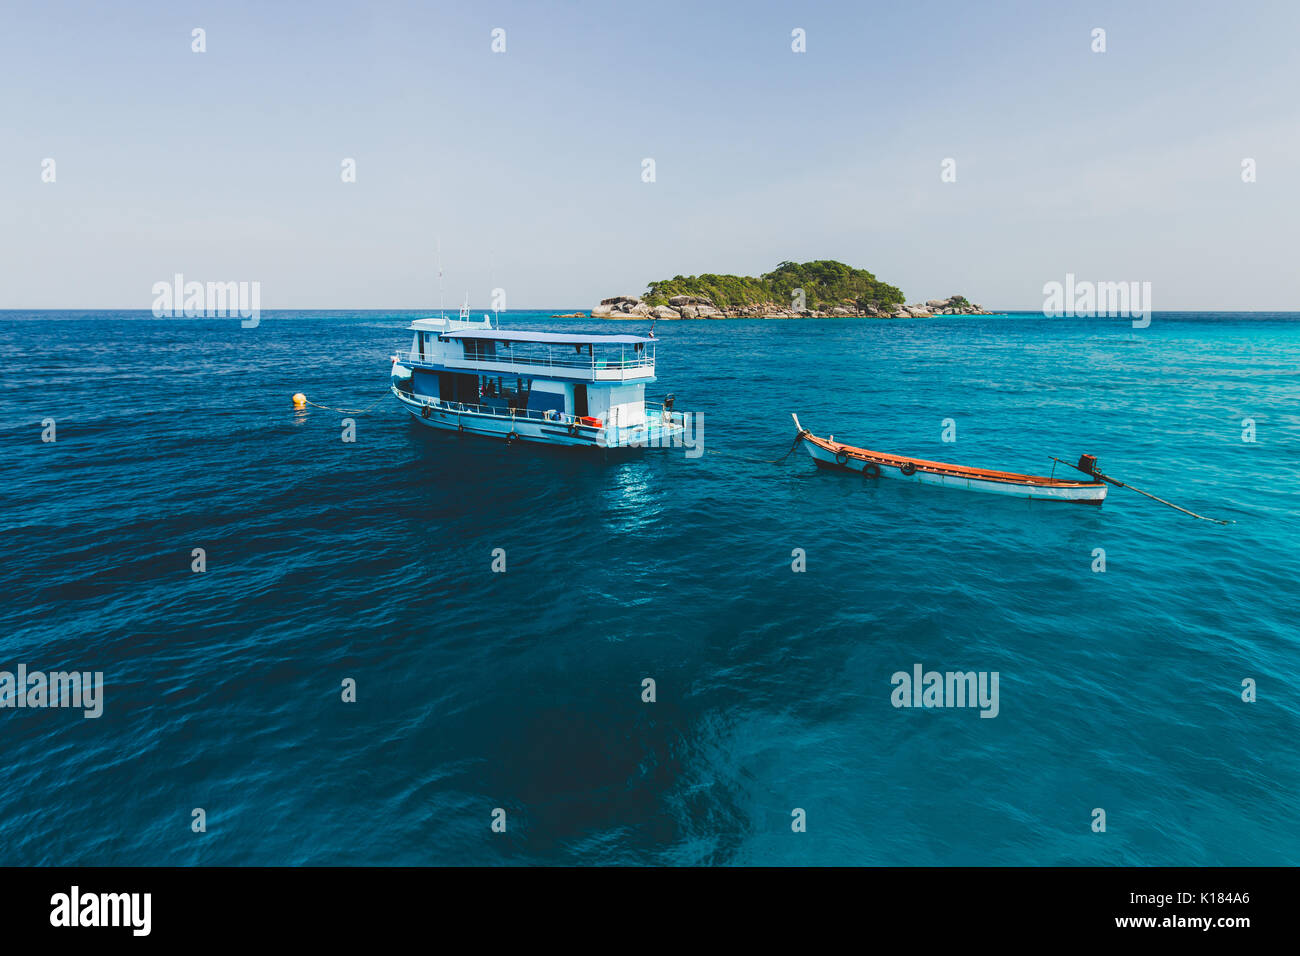 Tourist boat near island shore with turquoise clear transparent water. Idyllic view of Similan Islands - Stock Image